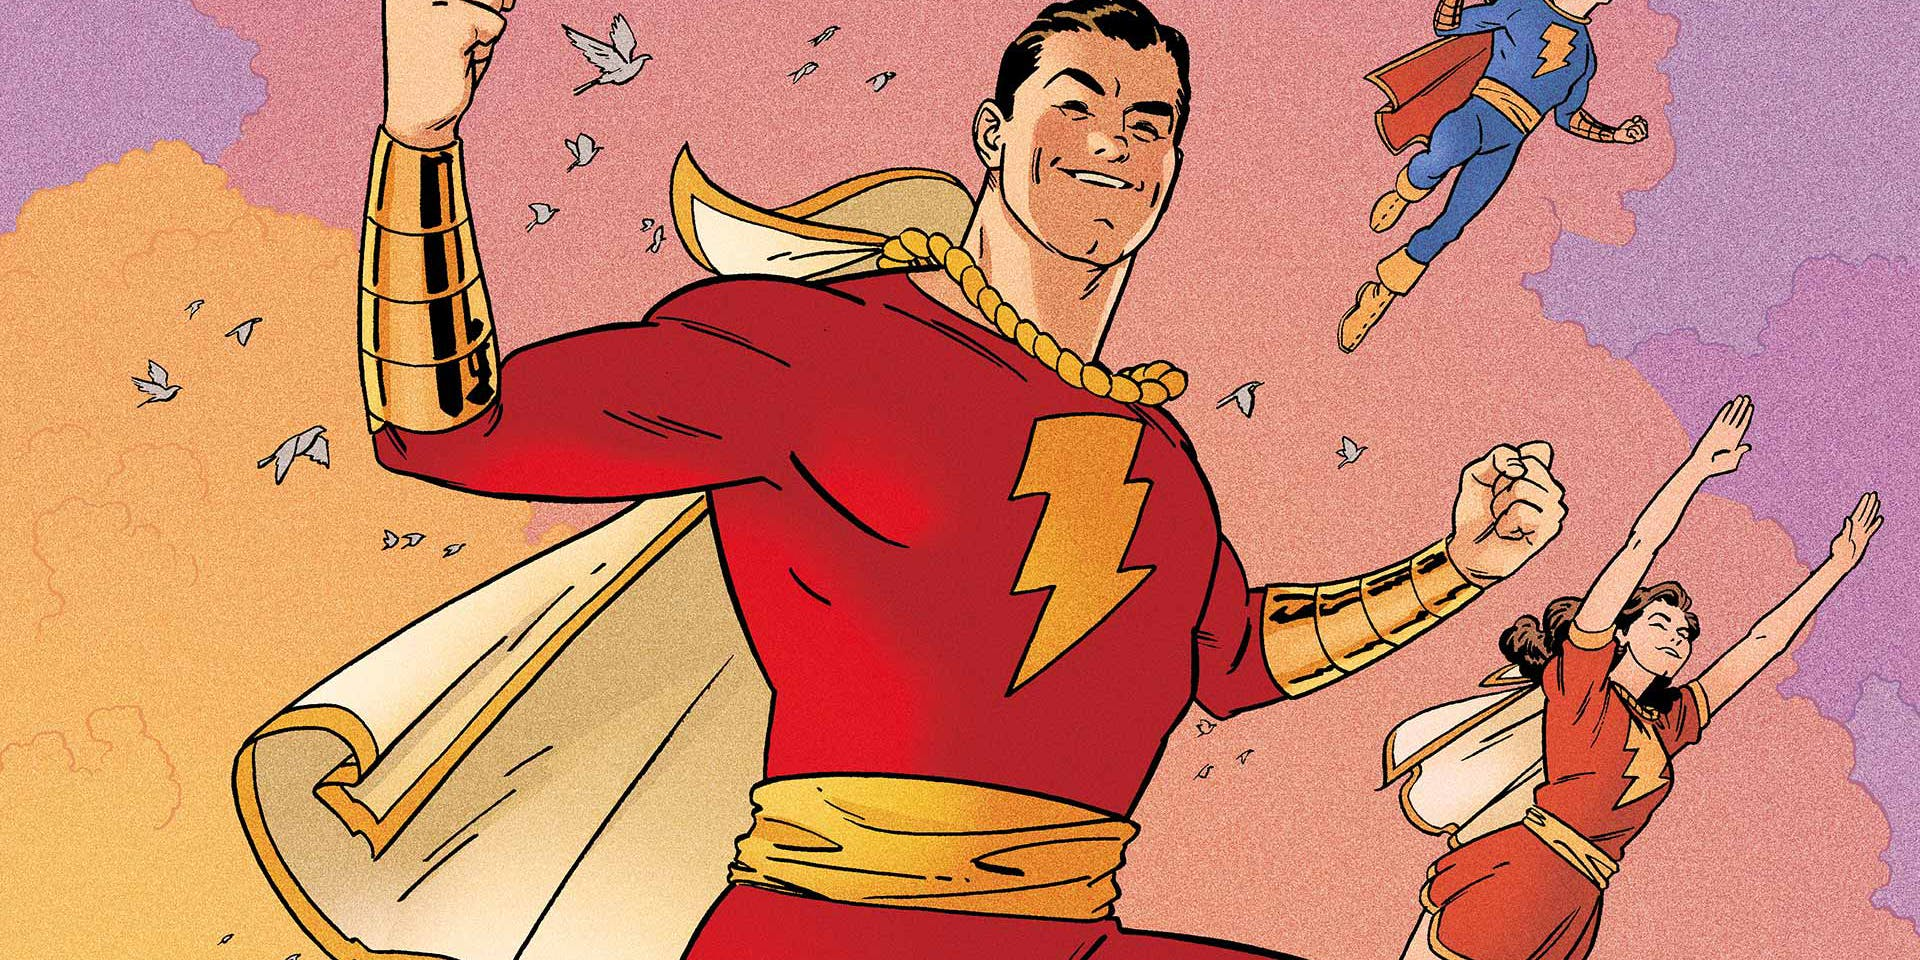 The Complicated Story of DC Superhero Shazam